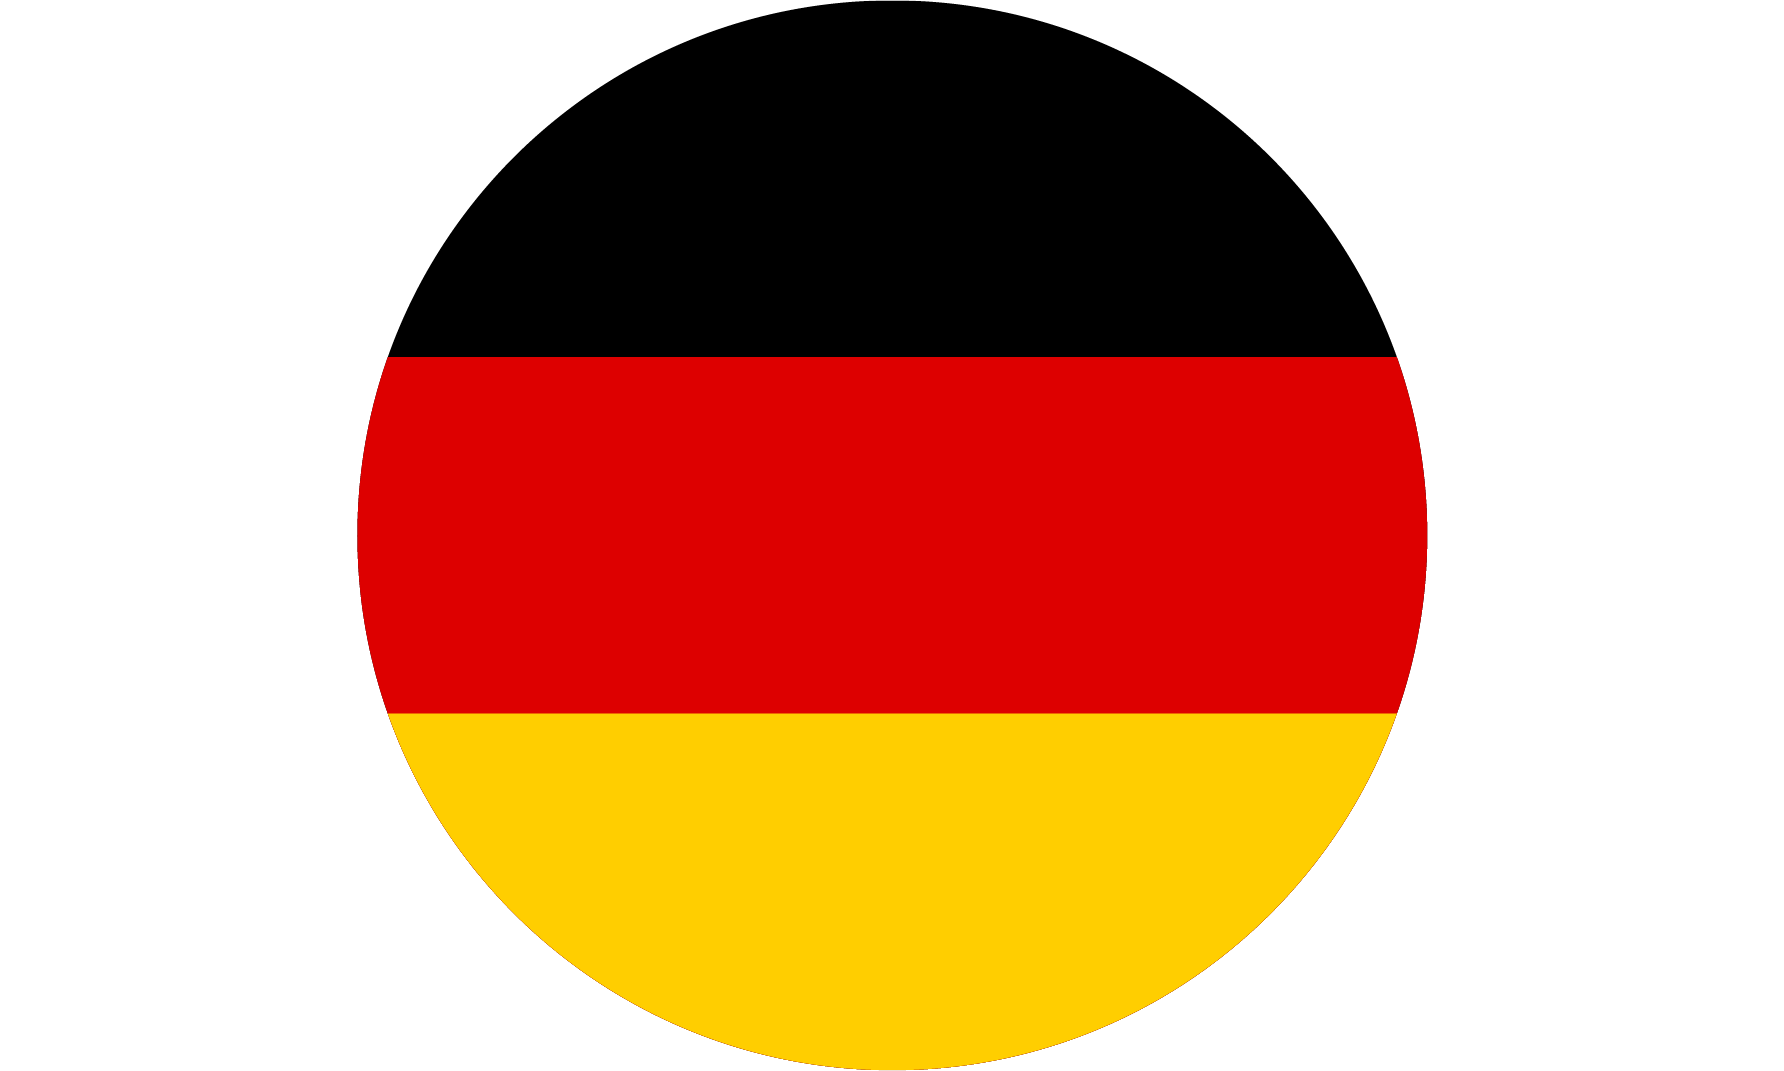 German flag png transparent. Germany clipart yellow